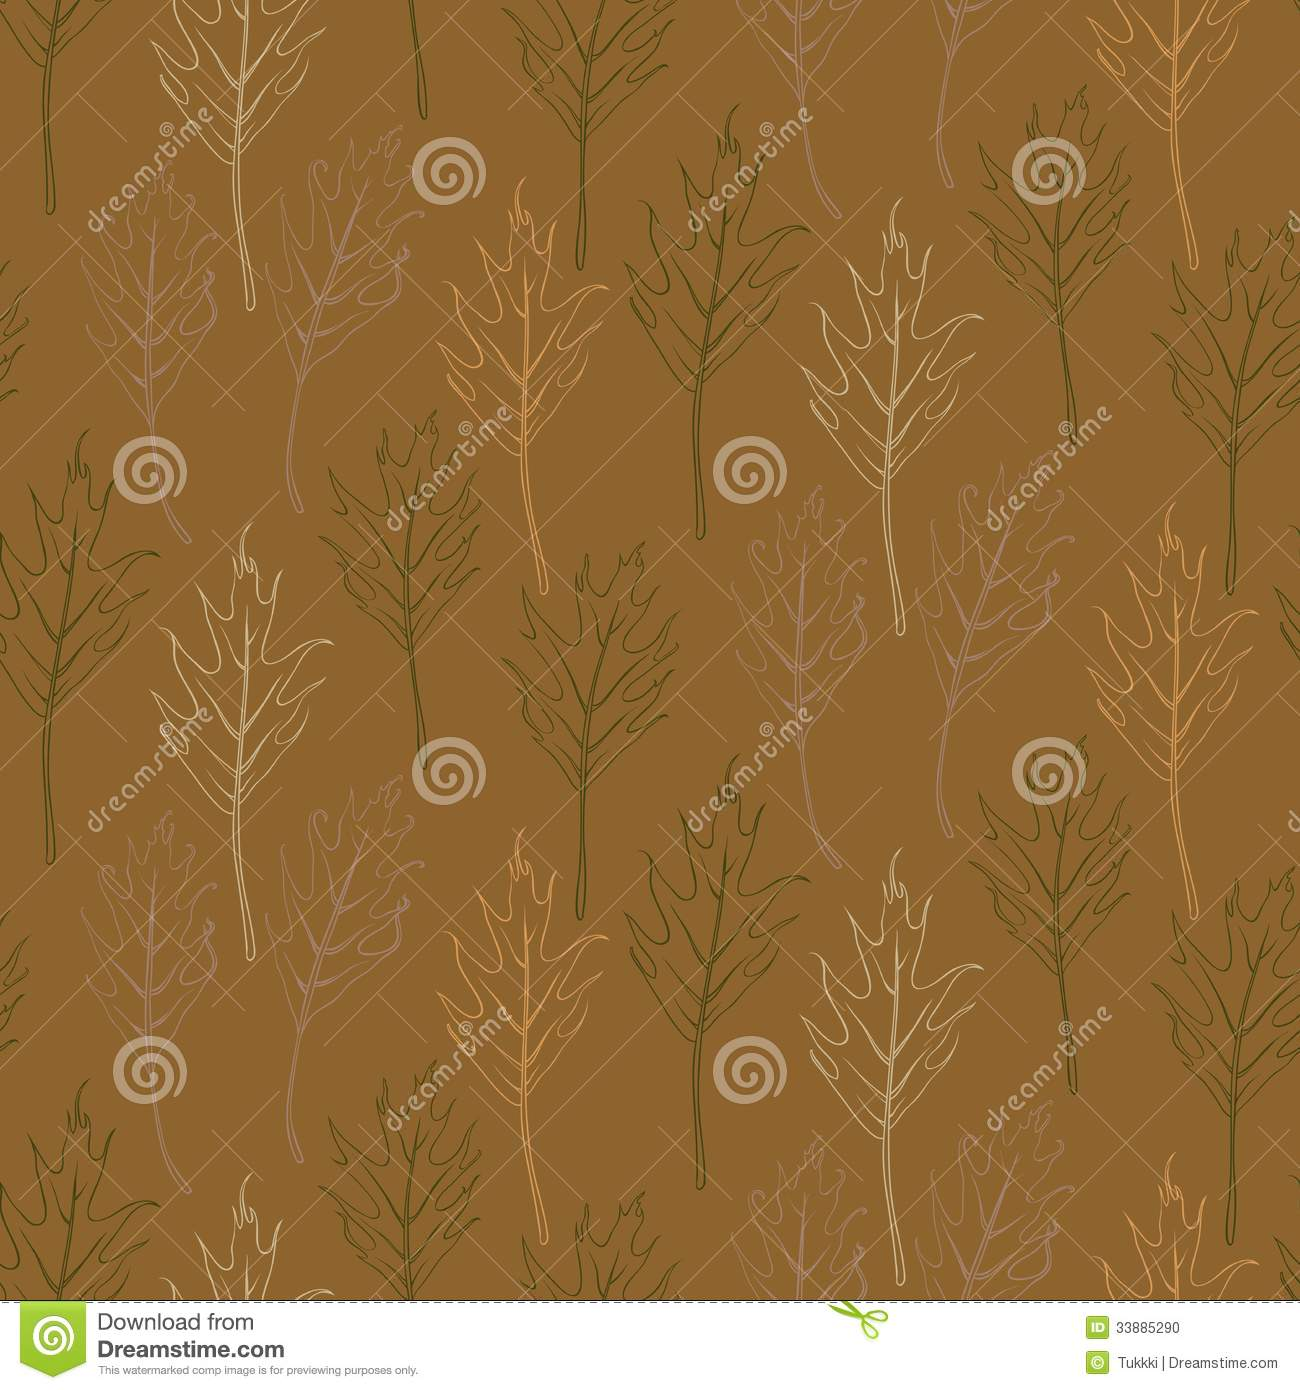 Simple and elegant pattern with oak leafs stock photo for Simple elegant wallpaper